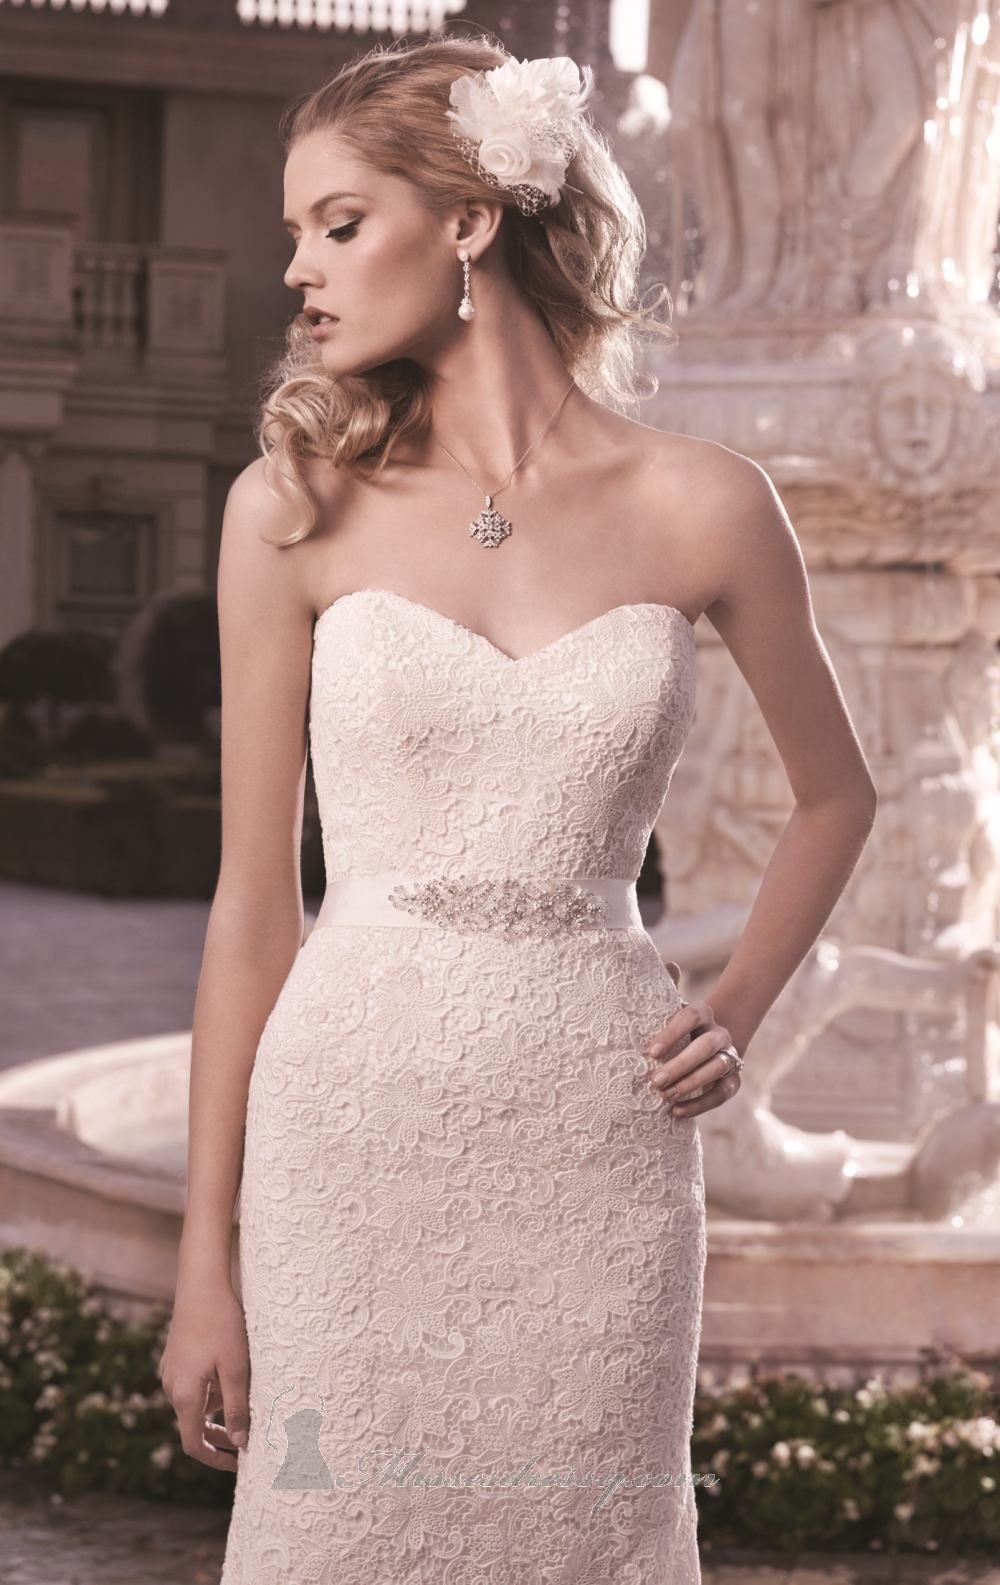 Bridal elegance erie pa navy weddings pinterest bridal